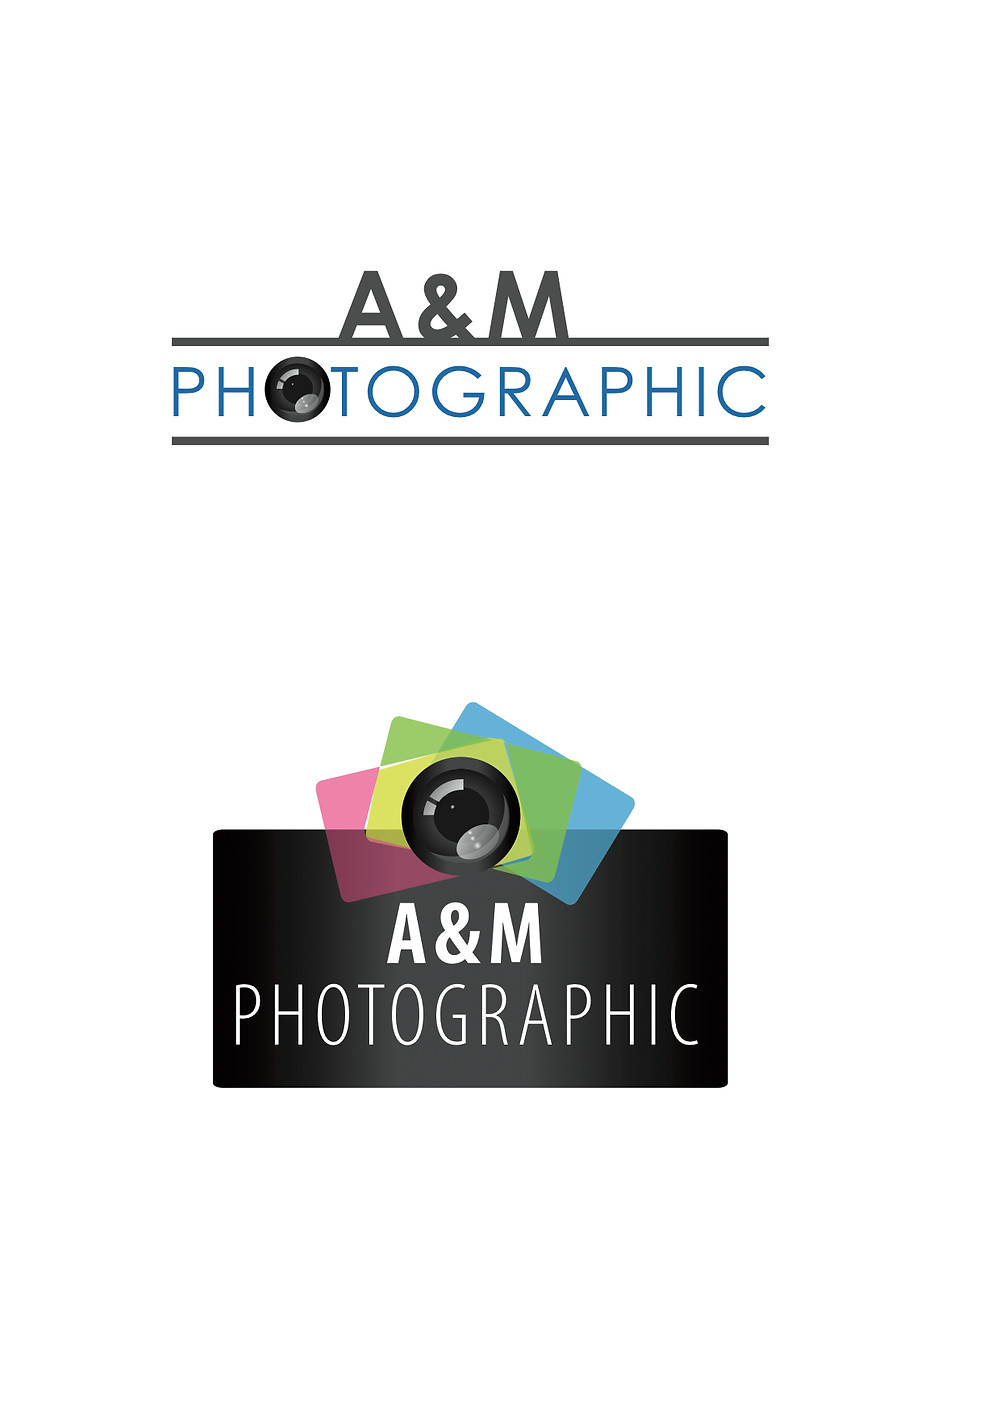 AM-PHOTOGRAPHIC4.jpg